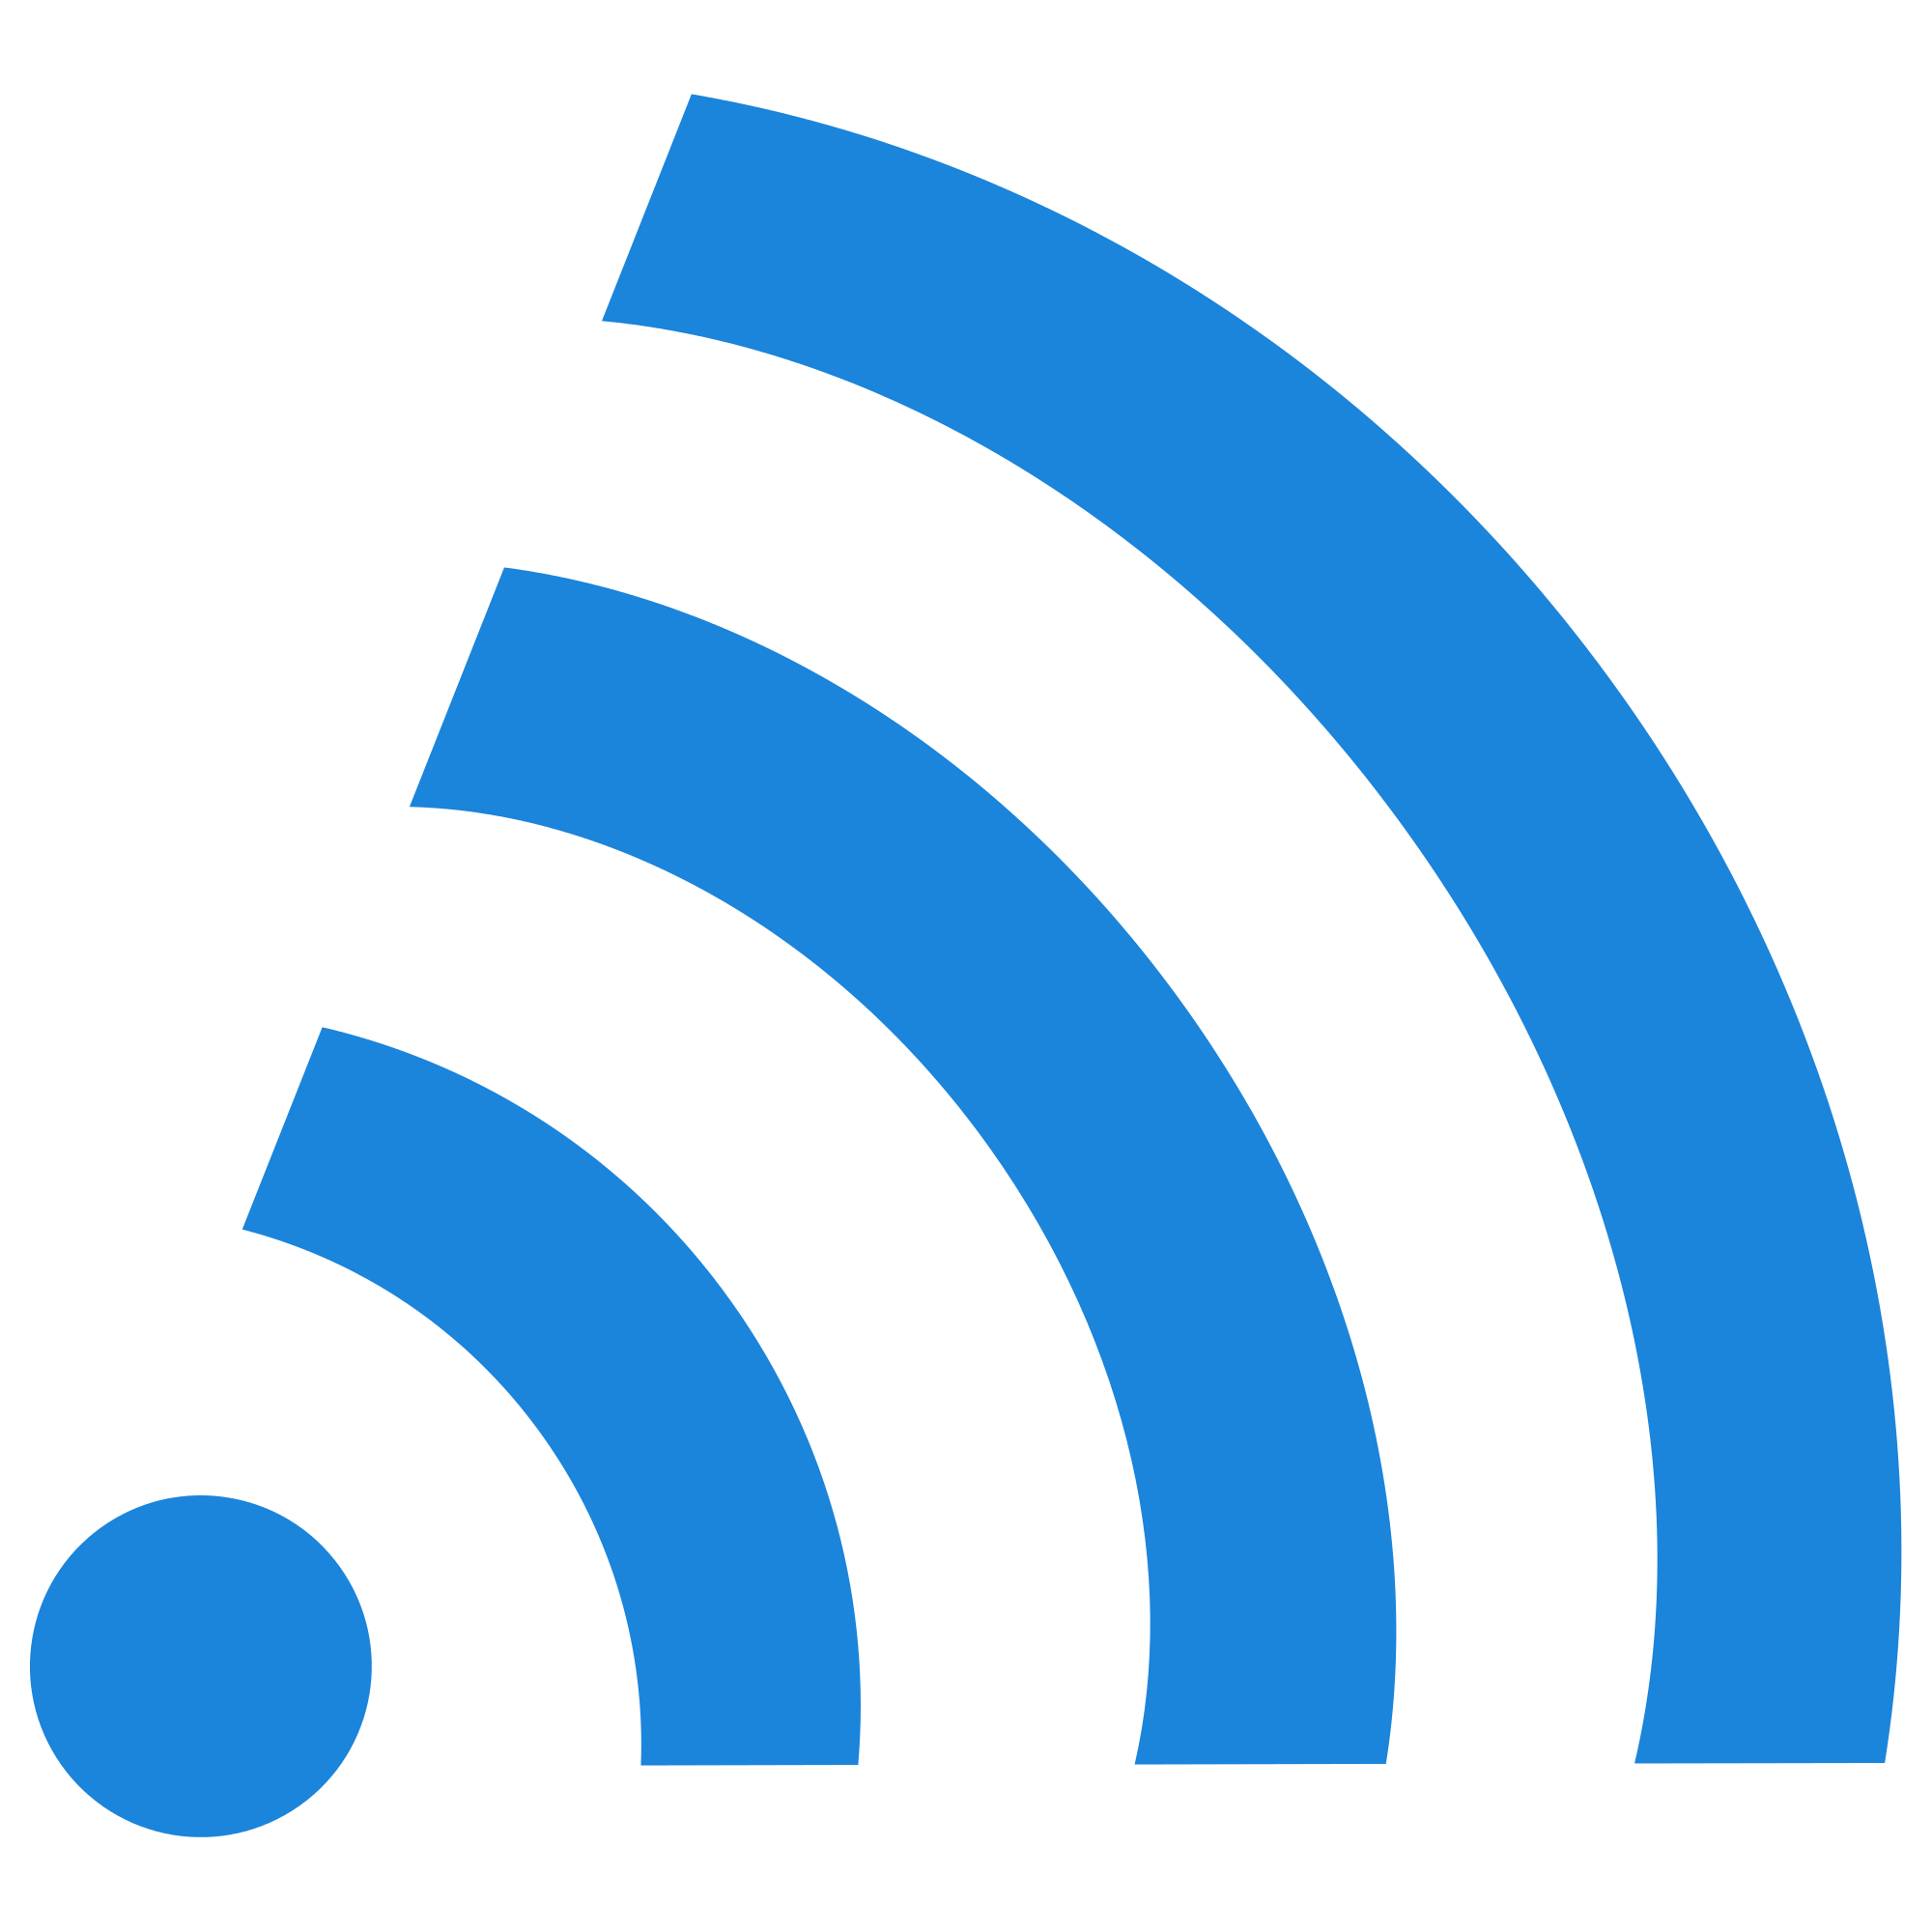 Wifi icon png. File svg wikimedia commons